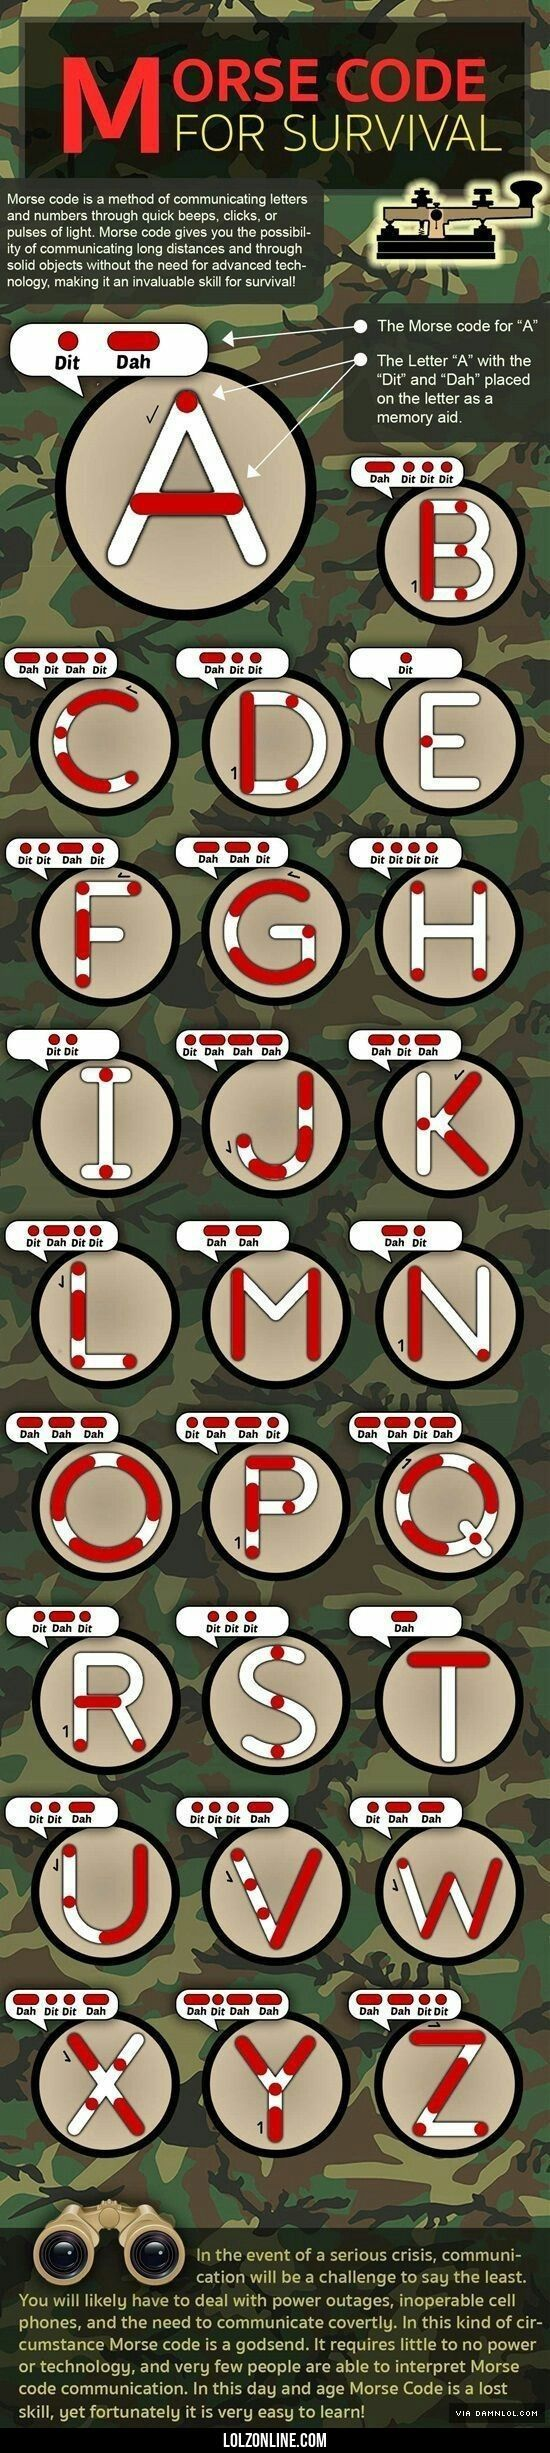 Morse Code For Survival #lol #haha #humorous....  Find out even more by checking out the picture